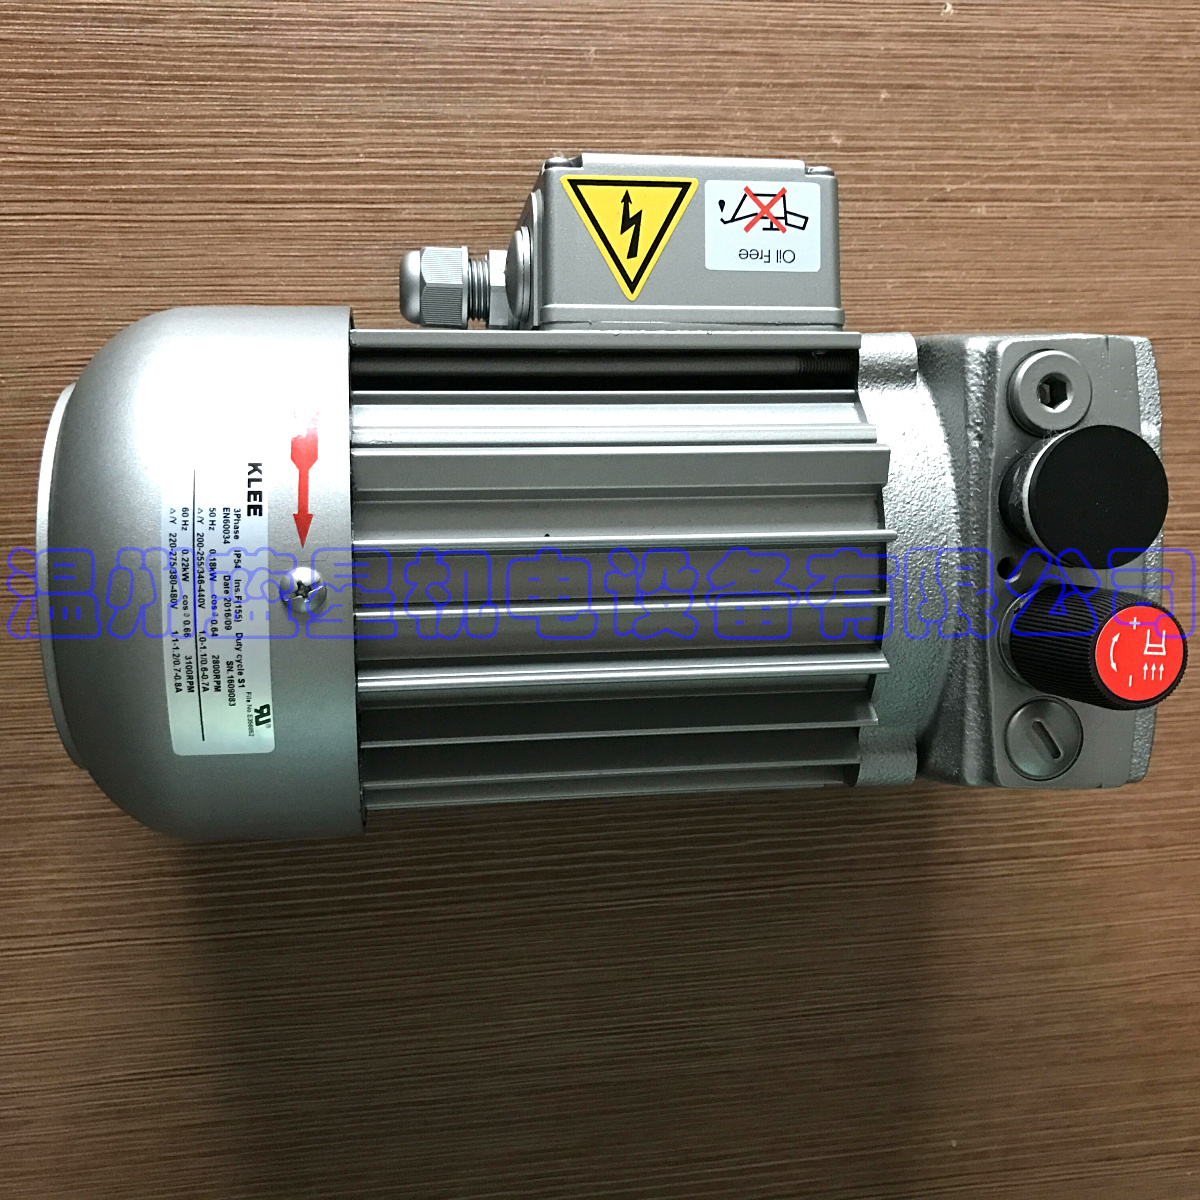 oil-free vacuum pump Kbv-404 KBV404 can replace  VT4.4 Maximum flow: 4.1m3/h, max absolute vacuum 150mbar, voltage AC220Voil-free vacuum pump Kbv-404 KBV404 can replace  VT4.4 Maximum flow: 4.1m3/h, max absolute vacuum 150mbar, voltage AC220V